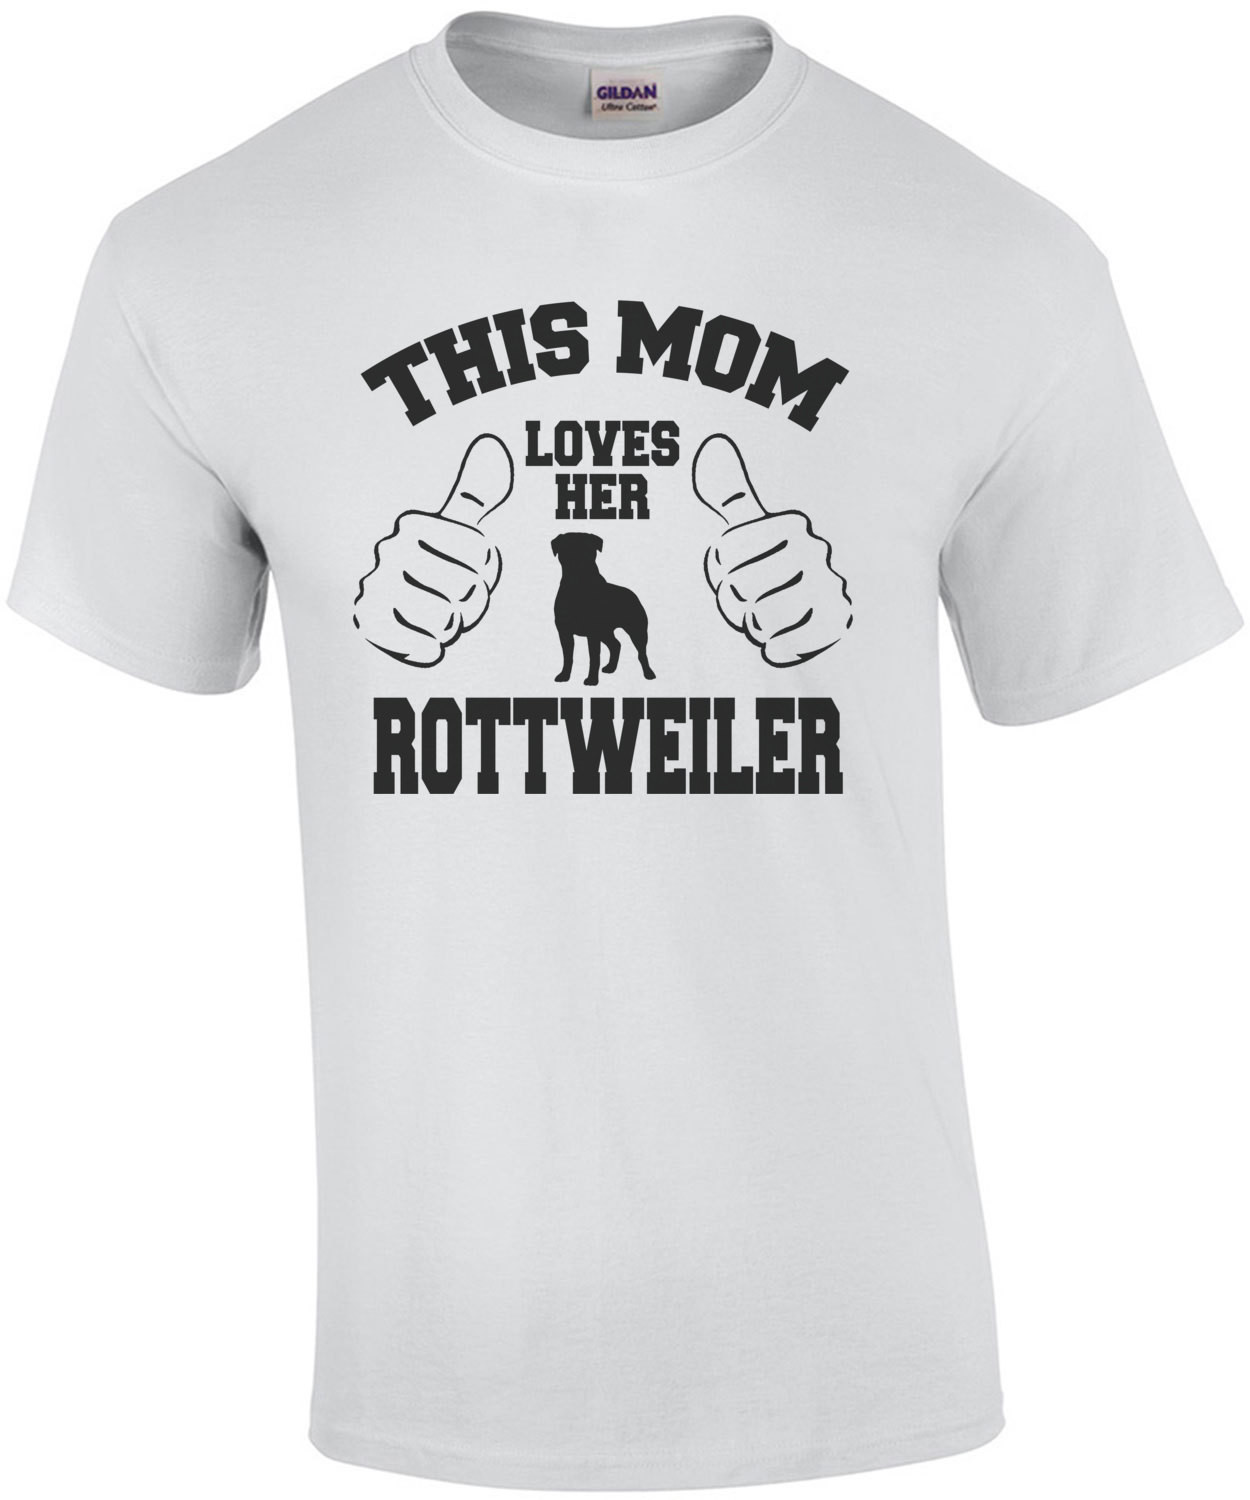 This Mom Loves Her Rottweiler T-Shirt